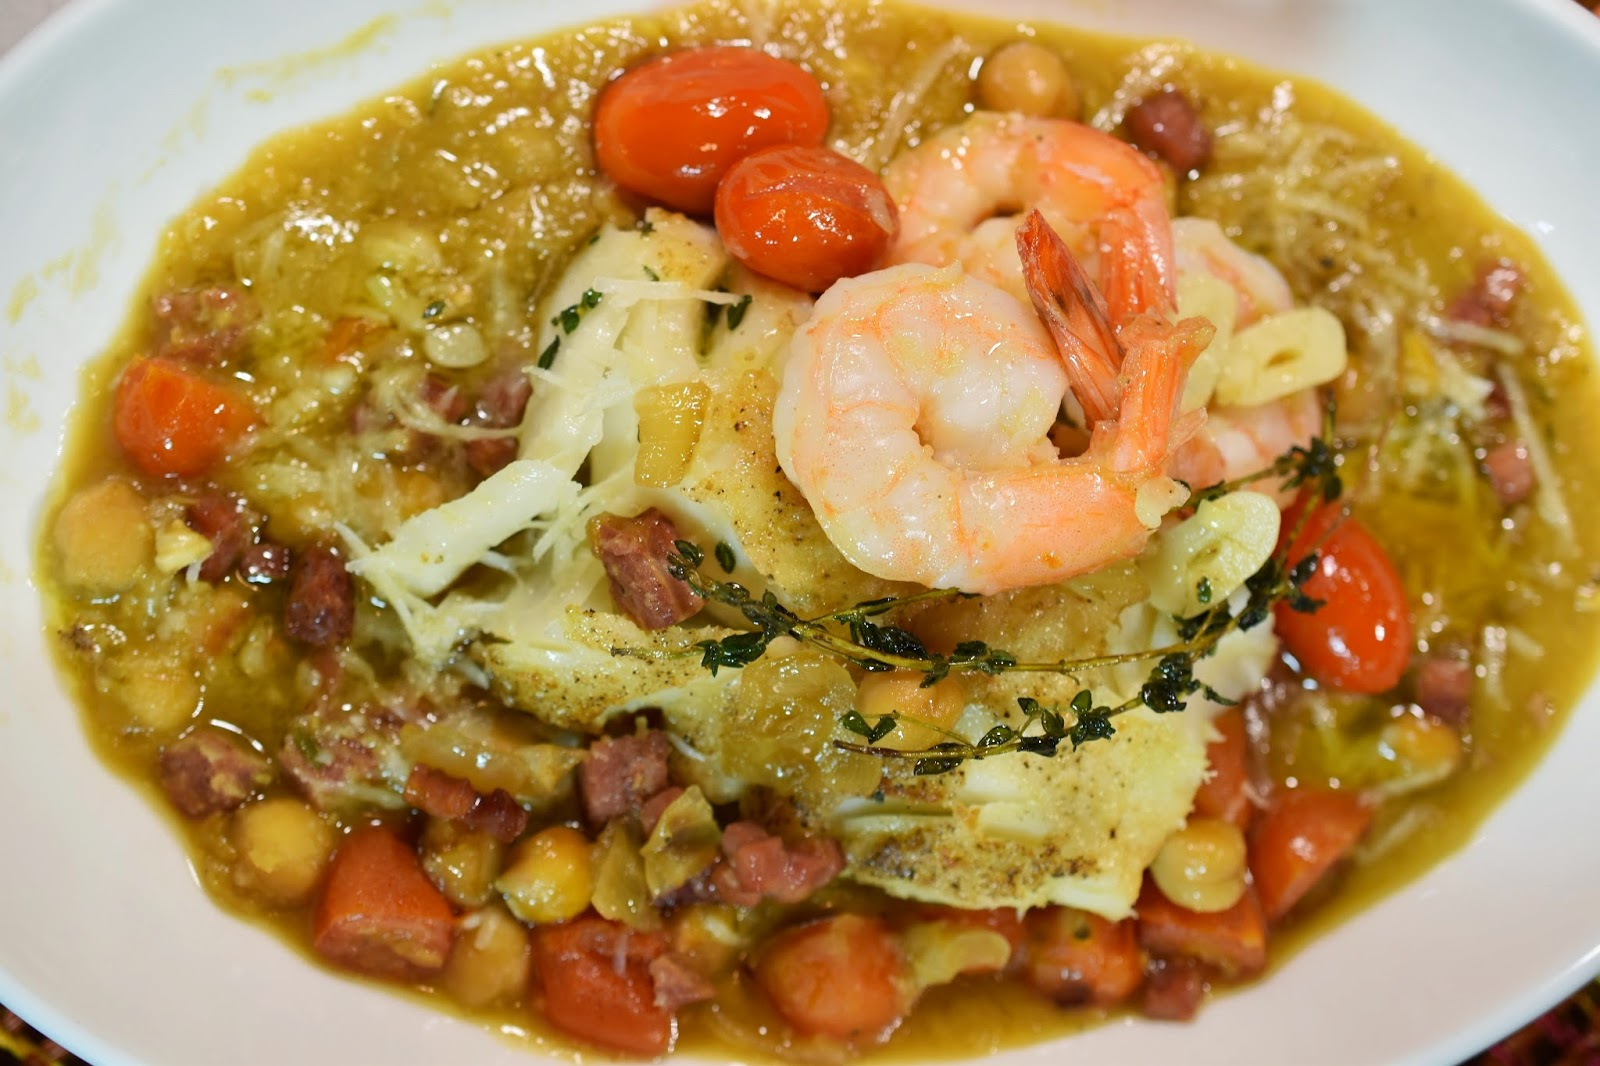 Saffron Chickpea Stew with Pecorino